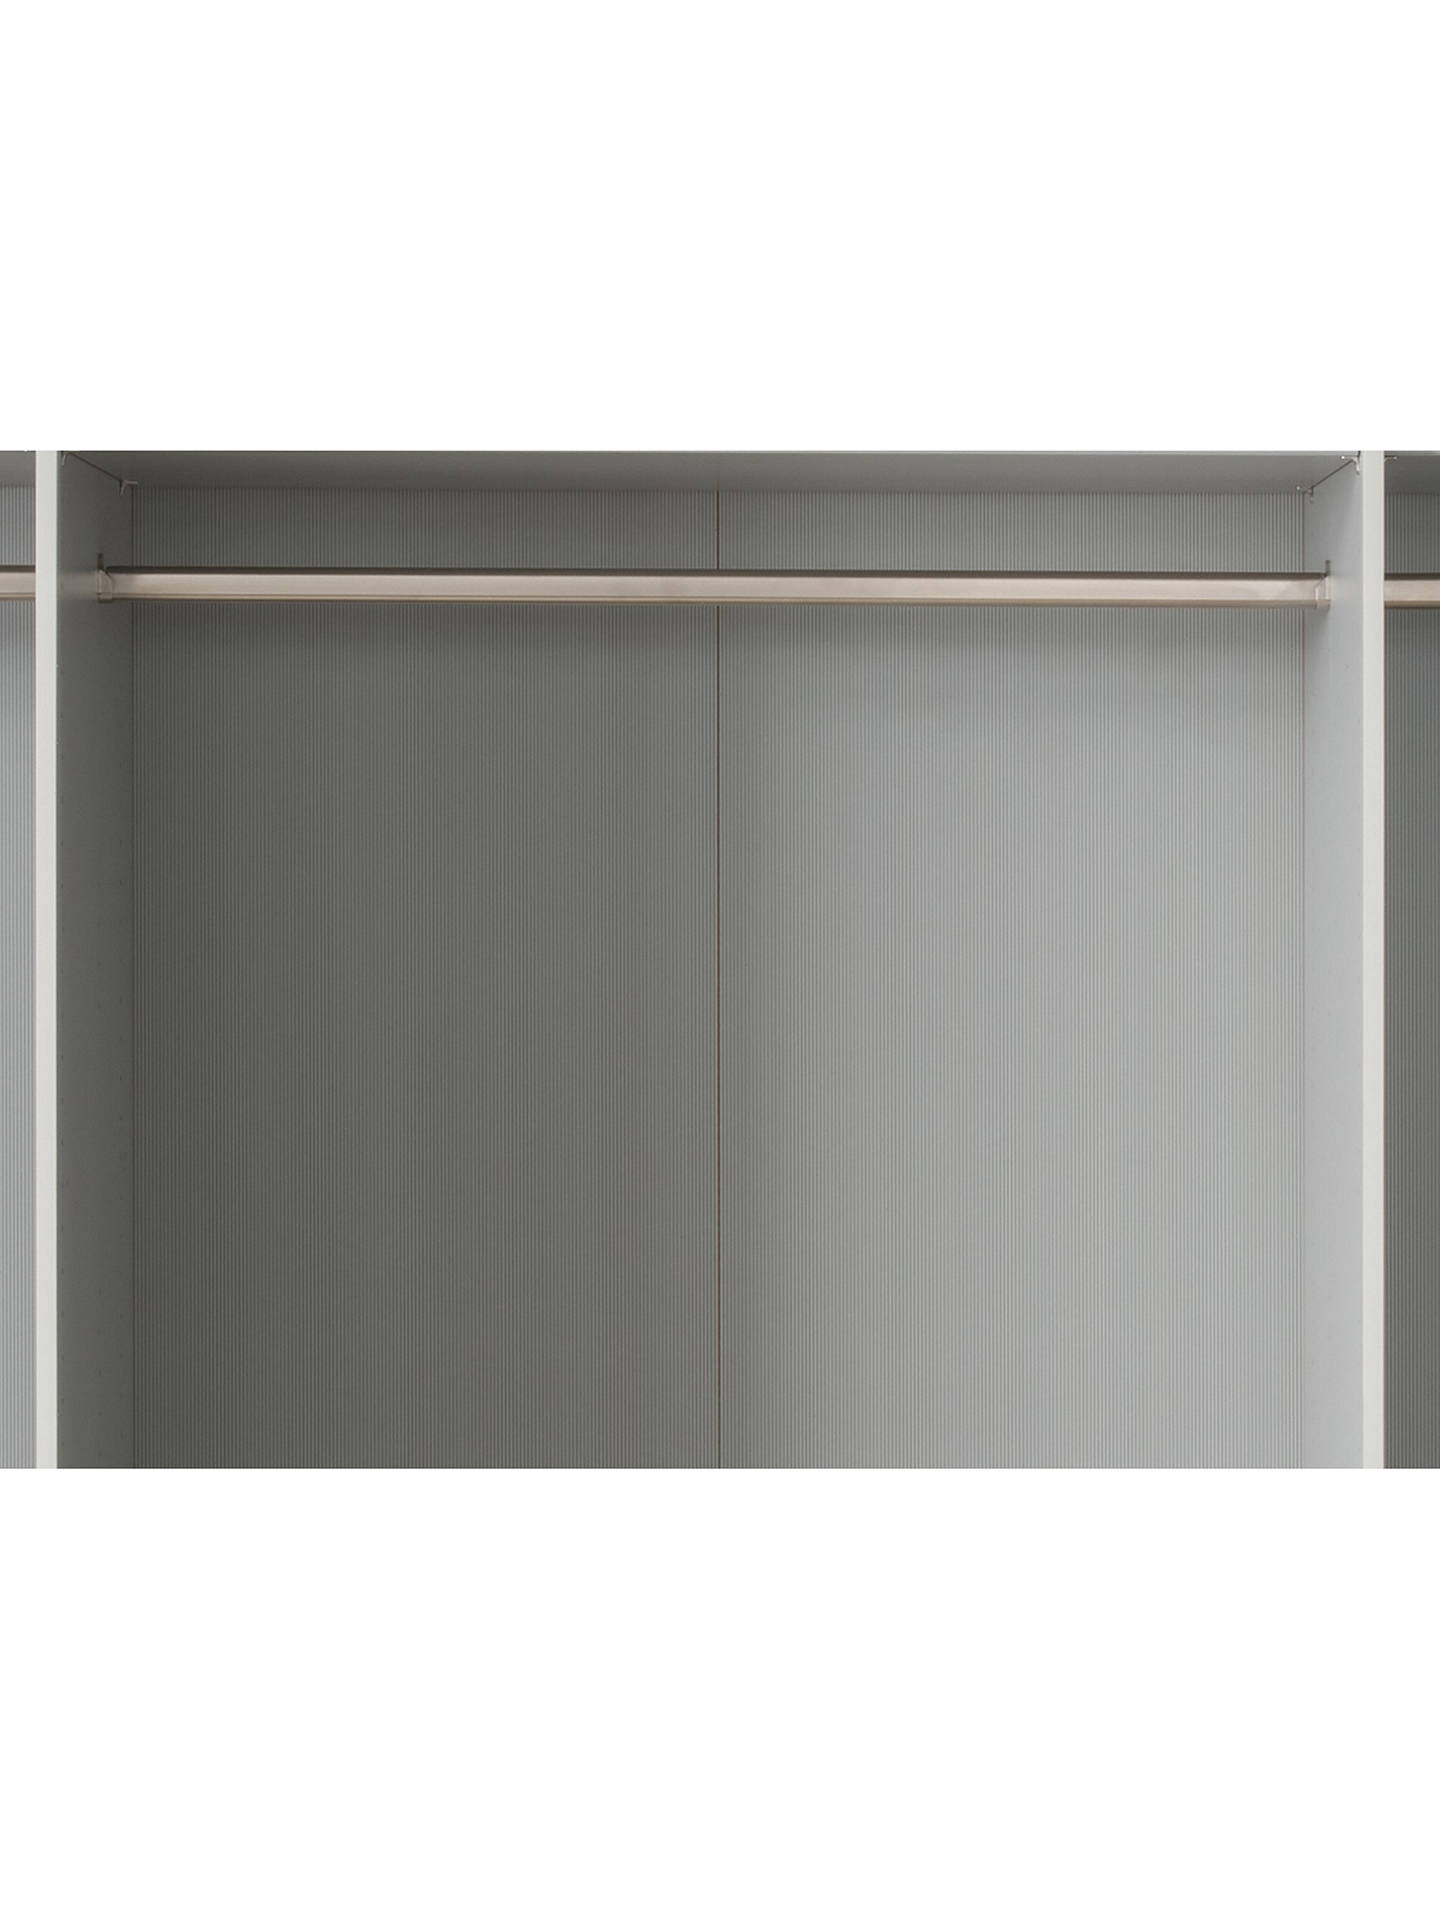 BuyJohn Lewis & Partners Hanging Rail for the Elstra Sliding Door Wardrobe, 72.2cm Online at johnlewis.com